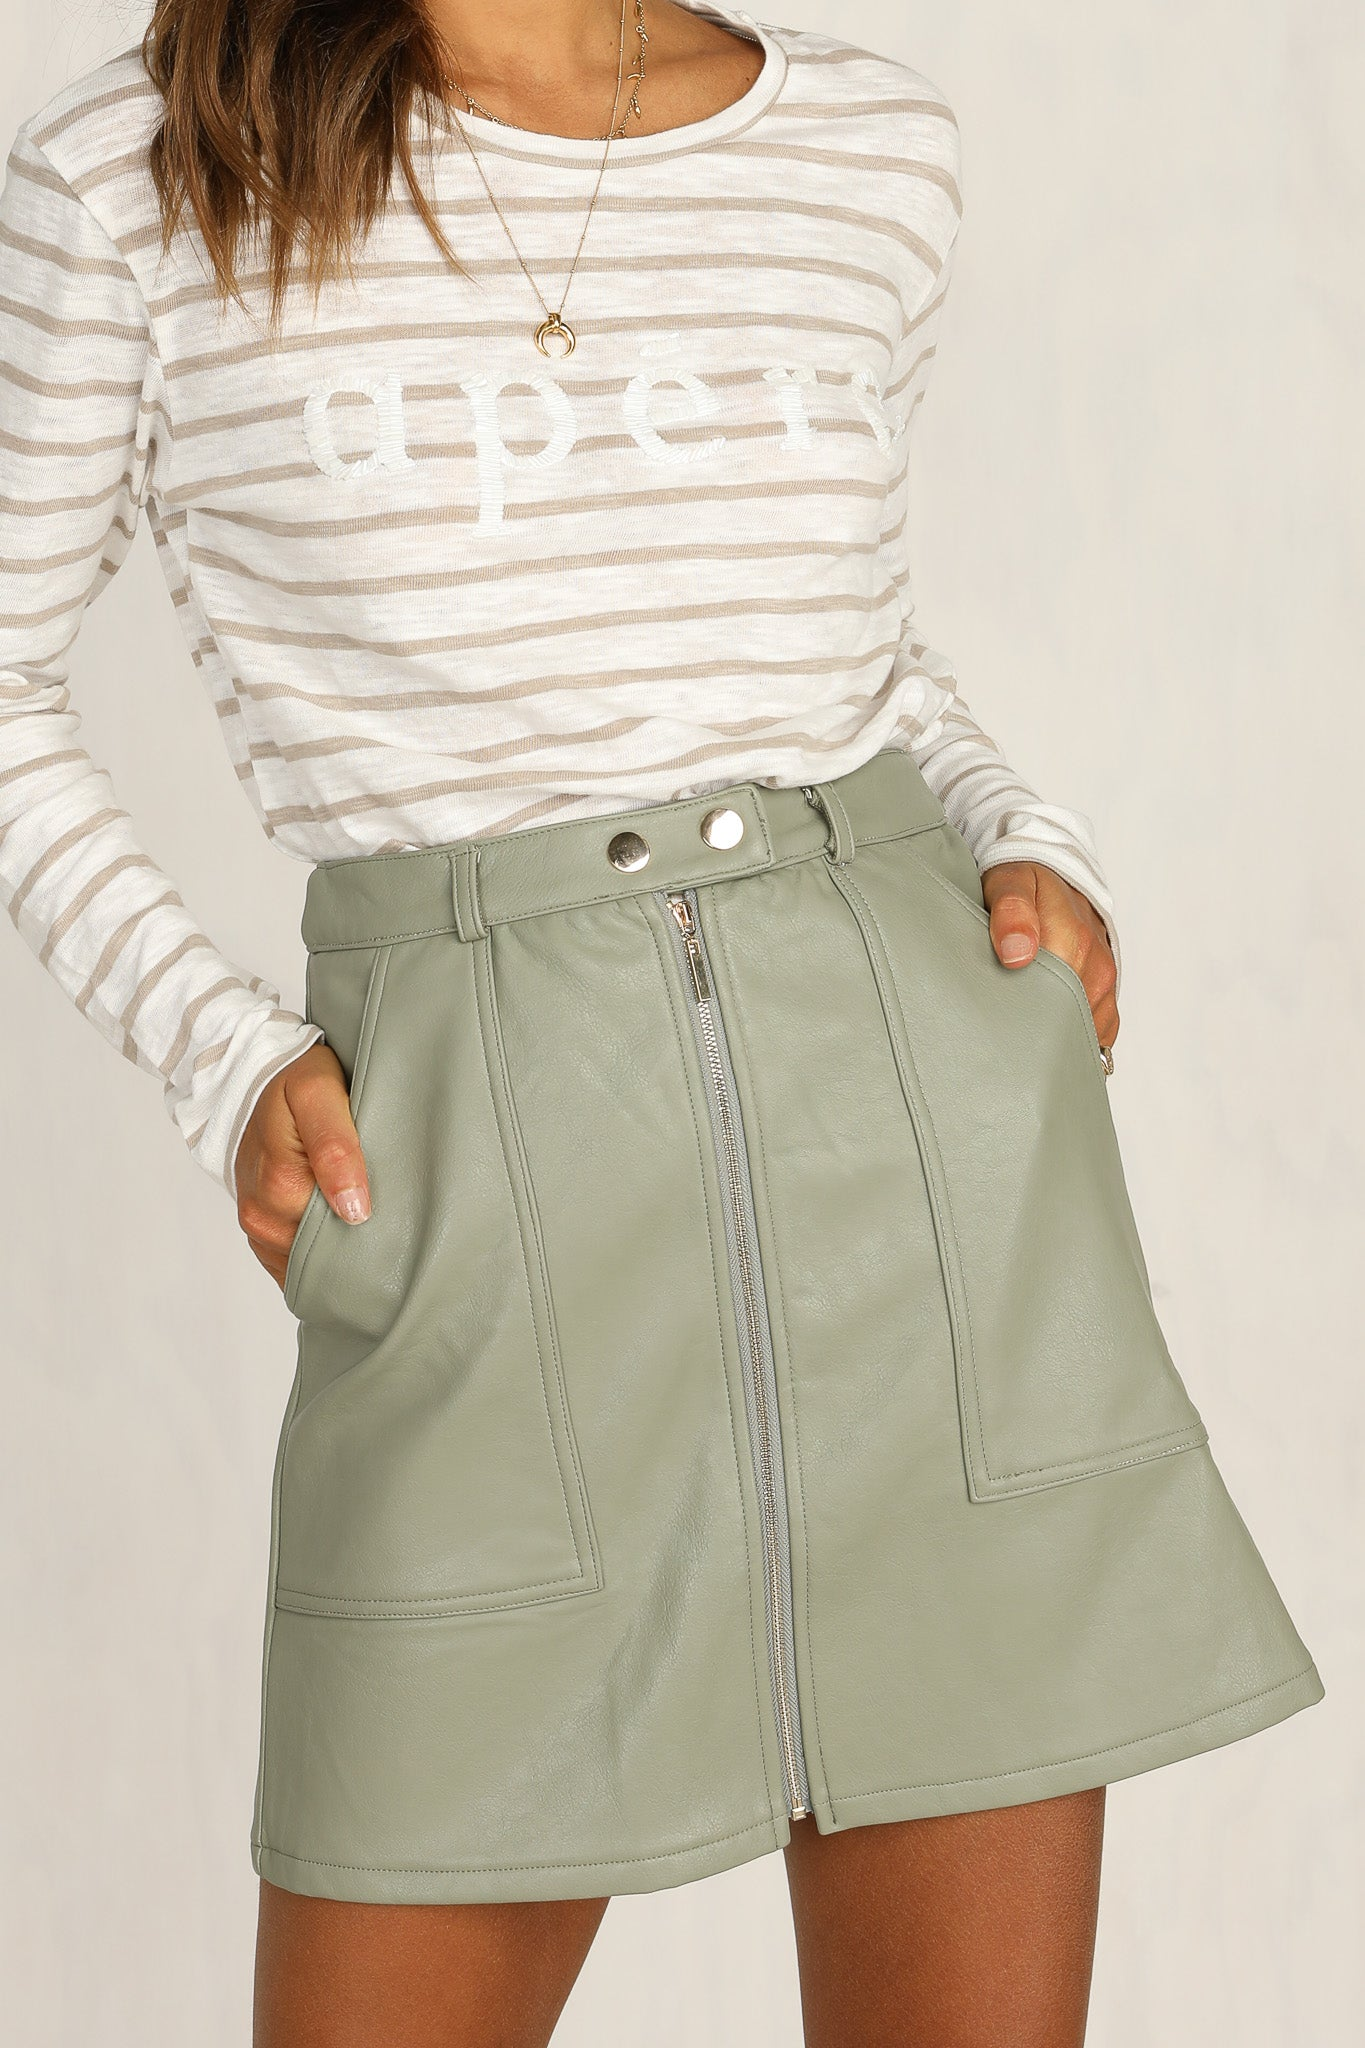 Intoxicate Skirt